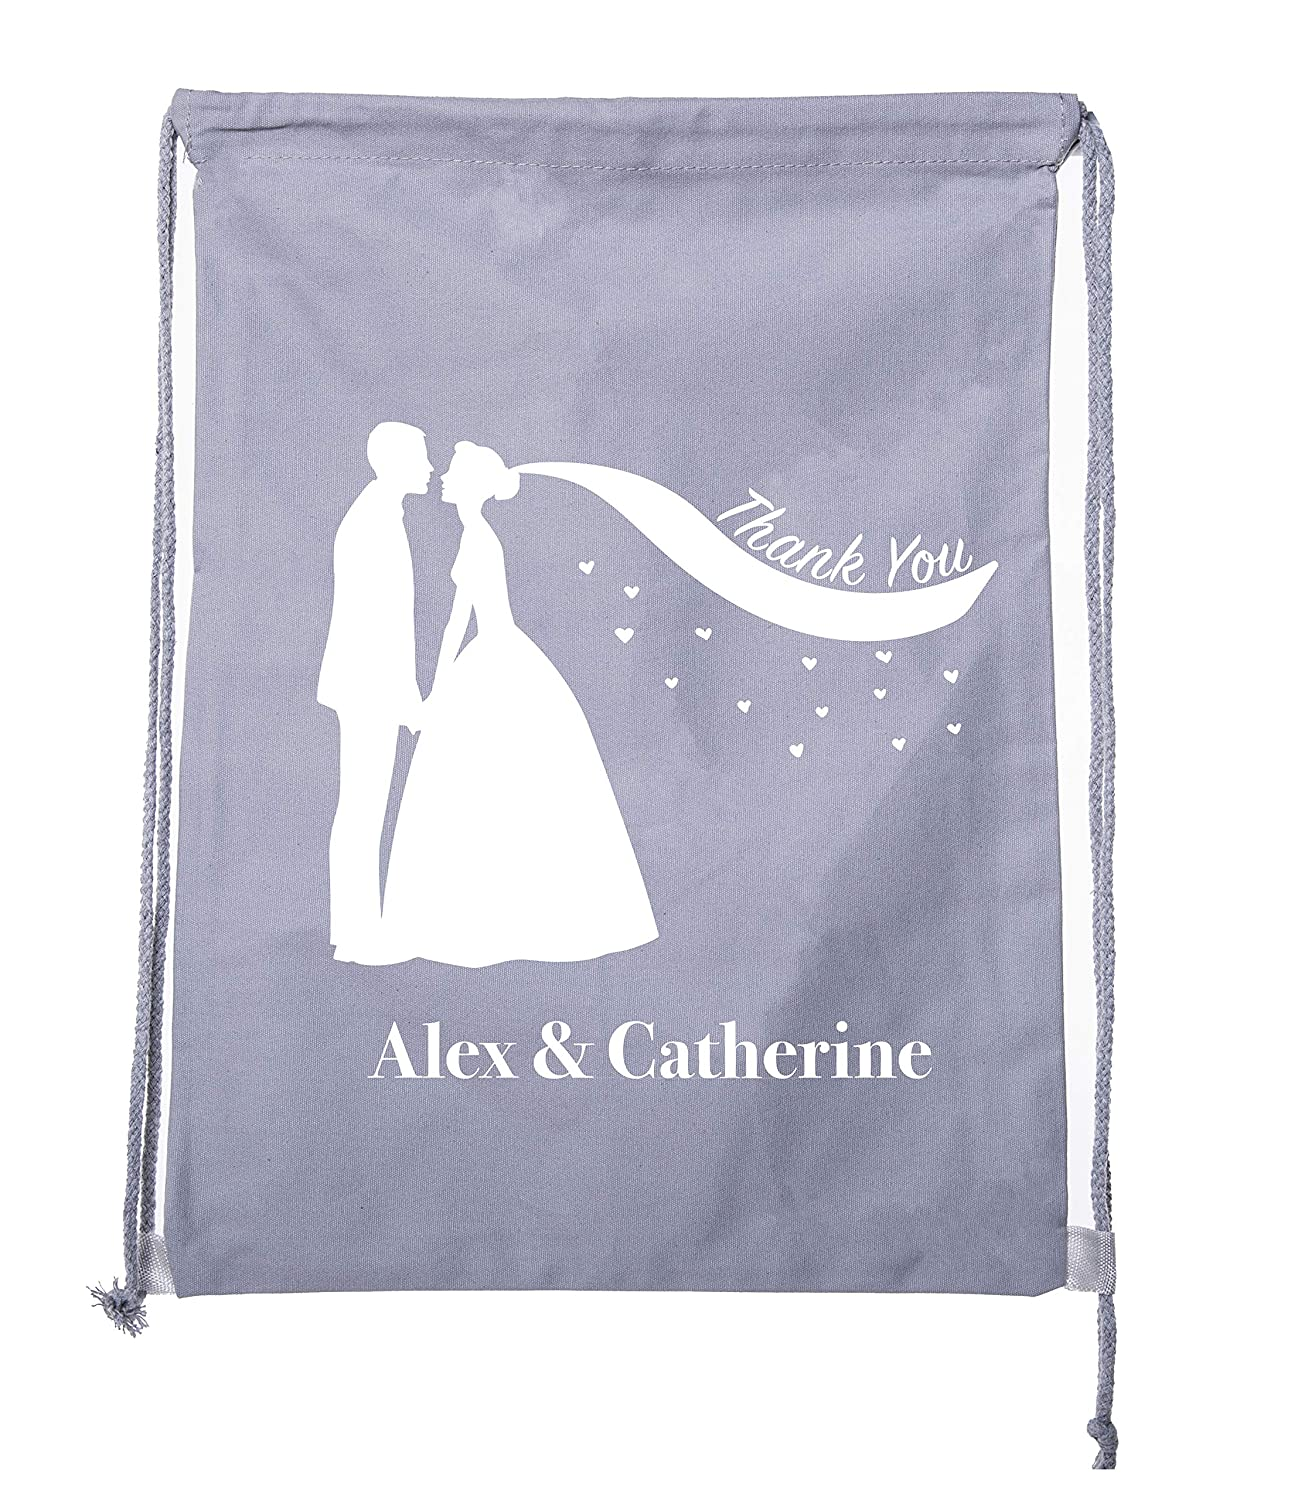 Cotton Drawstring Backpack Favor Bags for Wedding Guest Wedding Welcome Bags